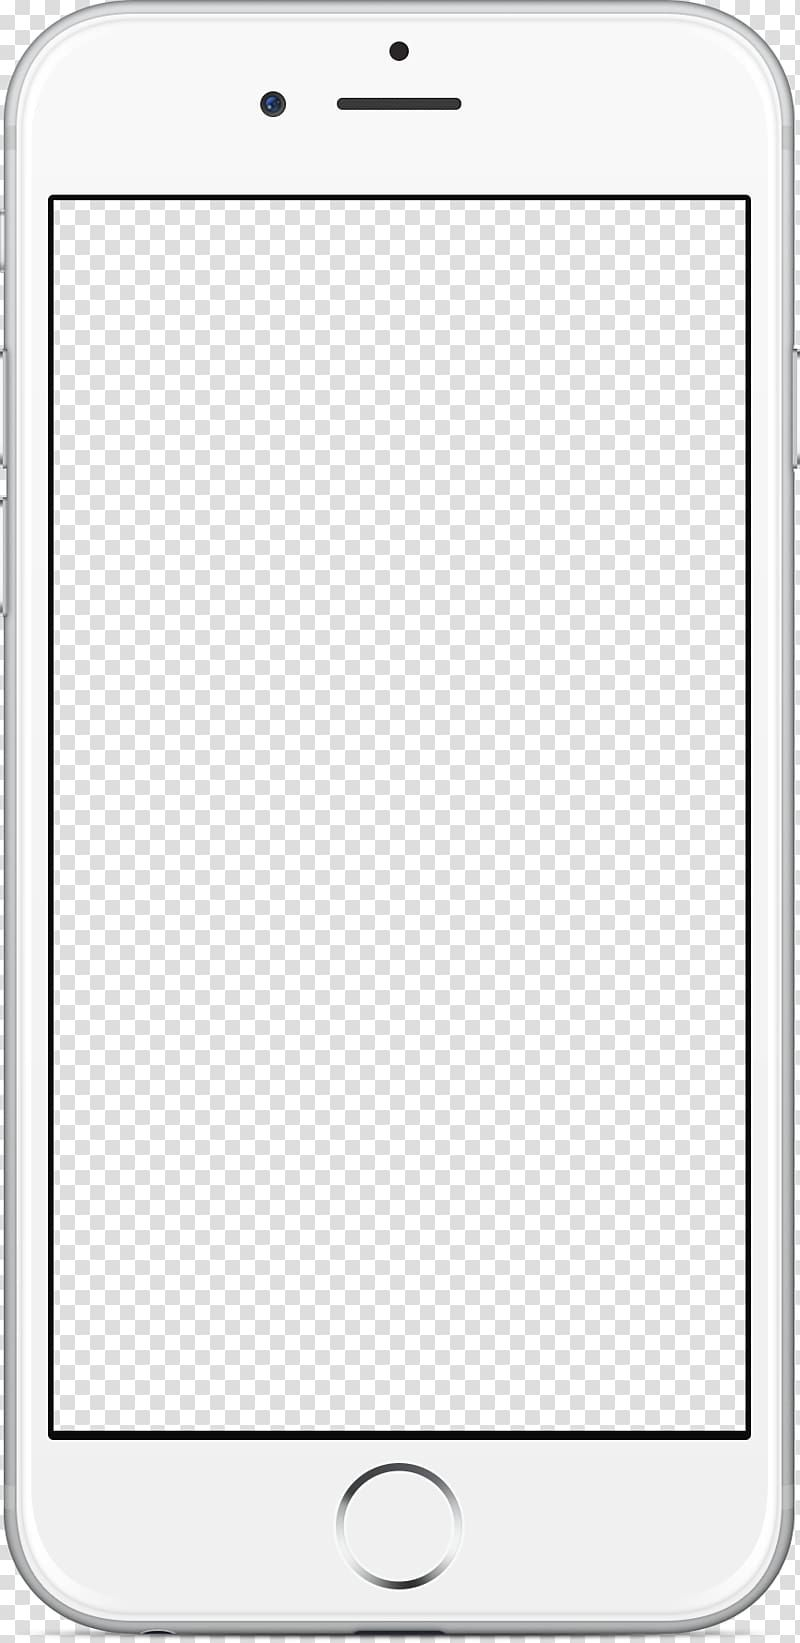 Iphone 6s Smartphone Phone Frame Gold Iphone 6 Transparent Background Png Clipart Gold Iphone Book Transparent Transparent Background